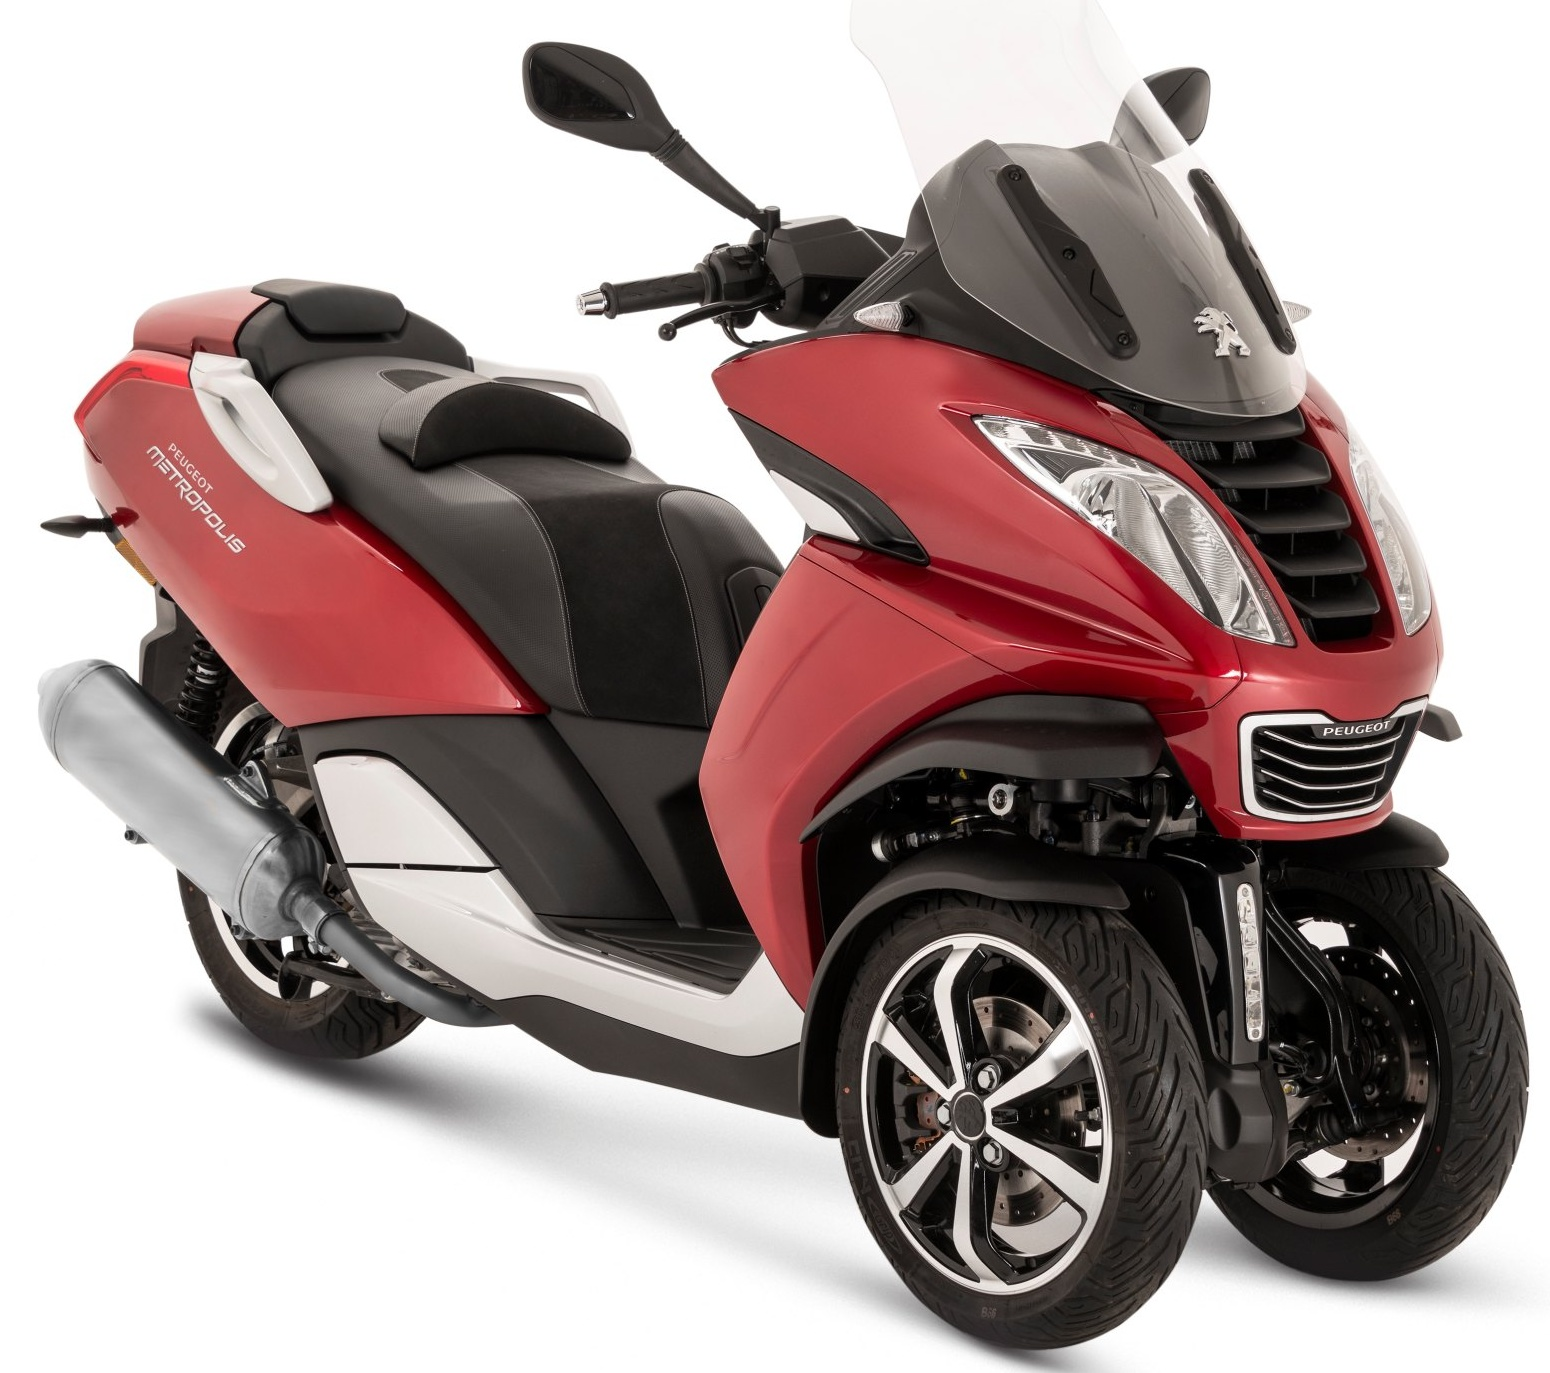 Peugeot Metropolis 400i Allure ABS Red ultimate